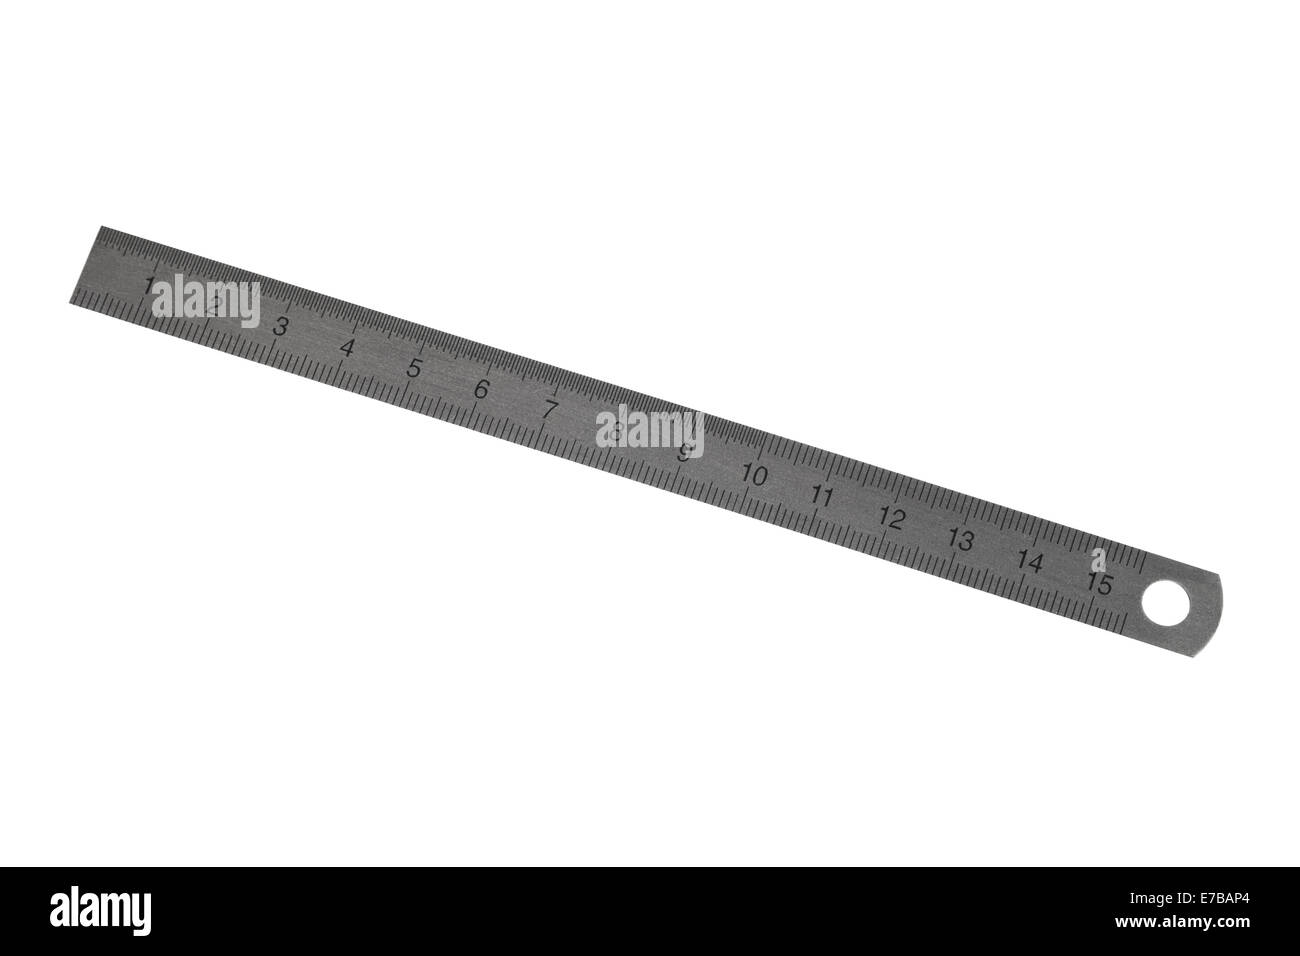 Stainless steel ruler on a white background - Stock Image